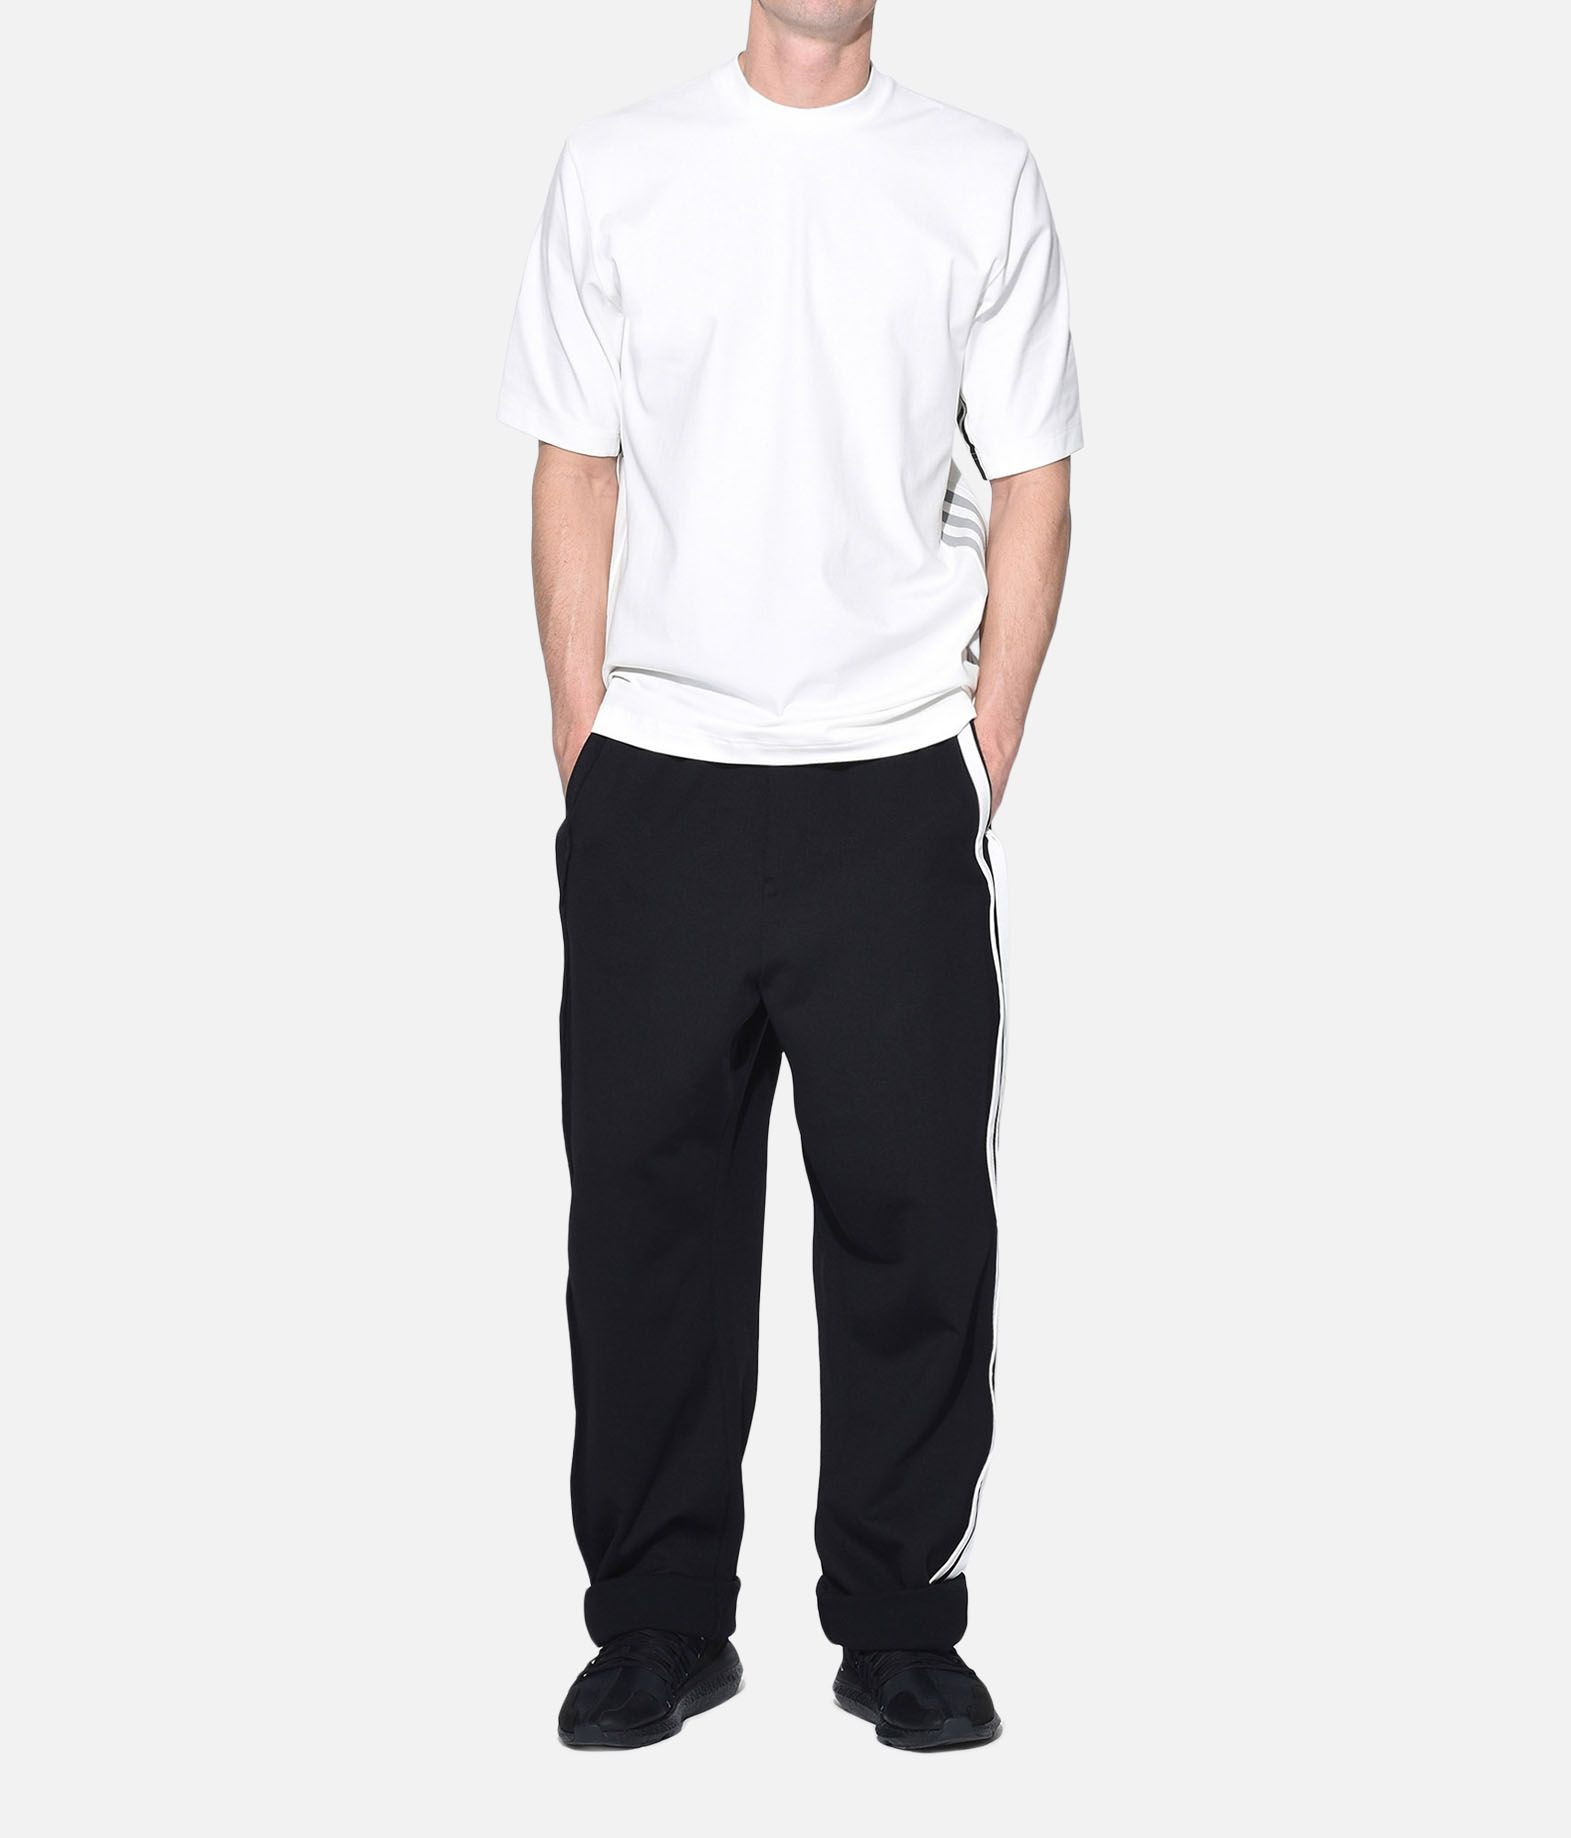 Y-3 Y-3 3-Stripes Selvedge Wide Pants Спортивные штаны Для Мужчин a